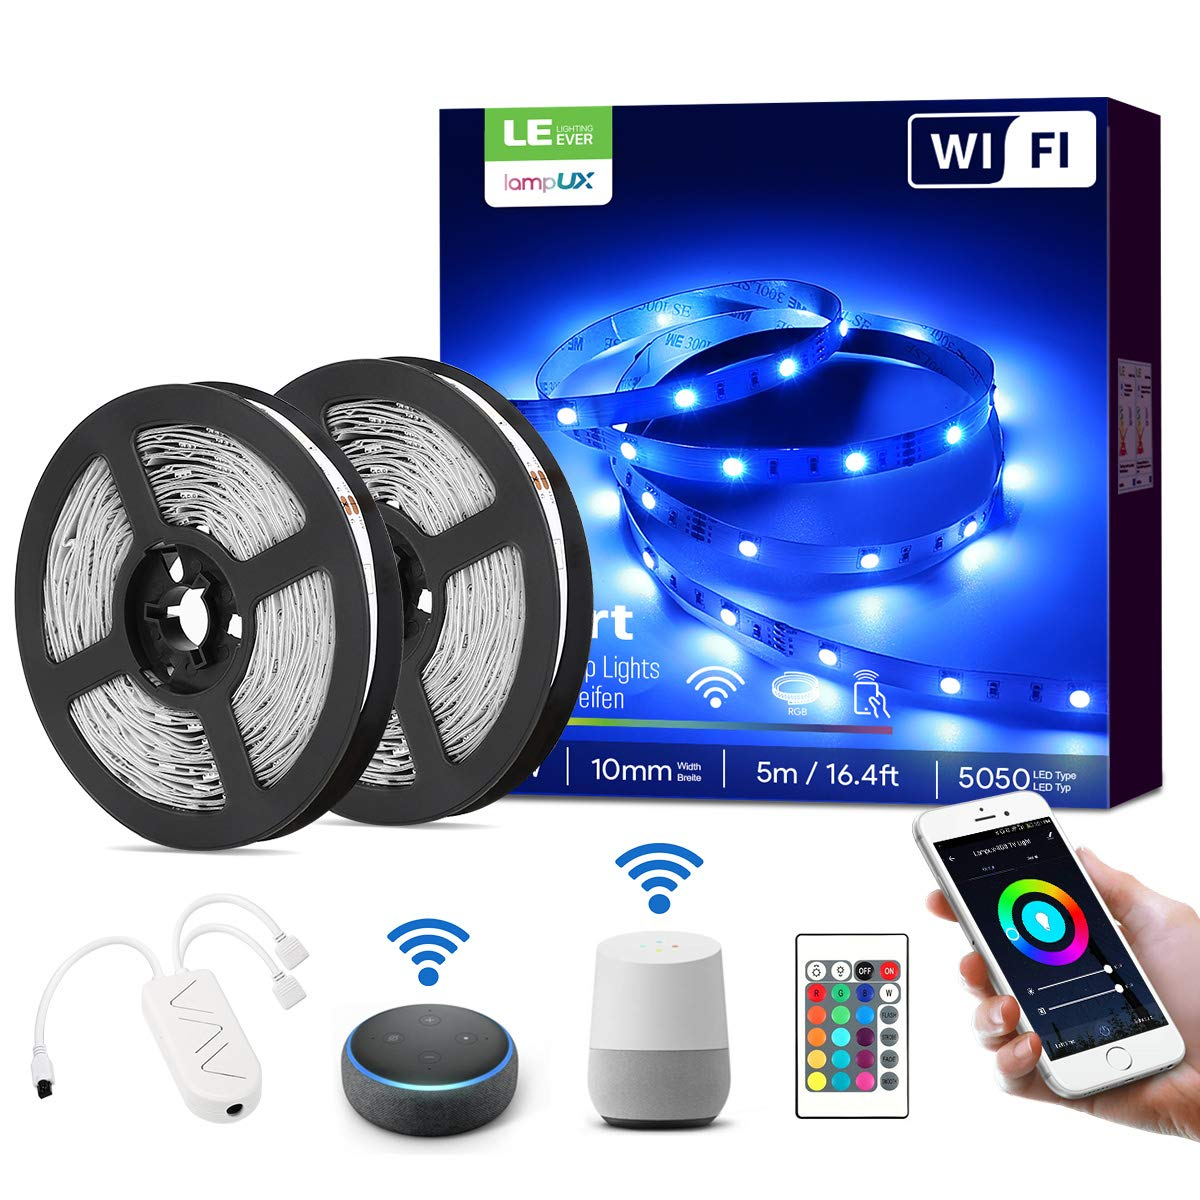 LE LampUX WiFi Smart LED Strip Lights with Remote, Alexa Google Home Compatible, 32.8ft RGB Color Changing, SMD 5050 LED Rope Light, Under Cabinet Strip Lighting, 12V Tape Light for Kitchen, Bedroom